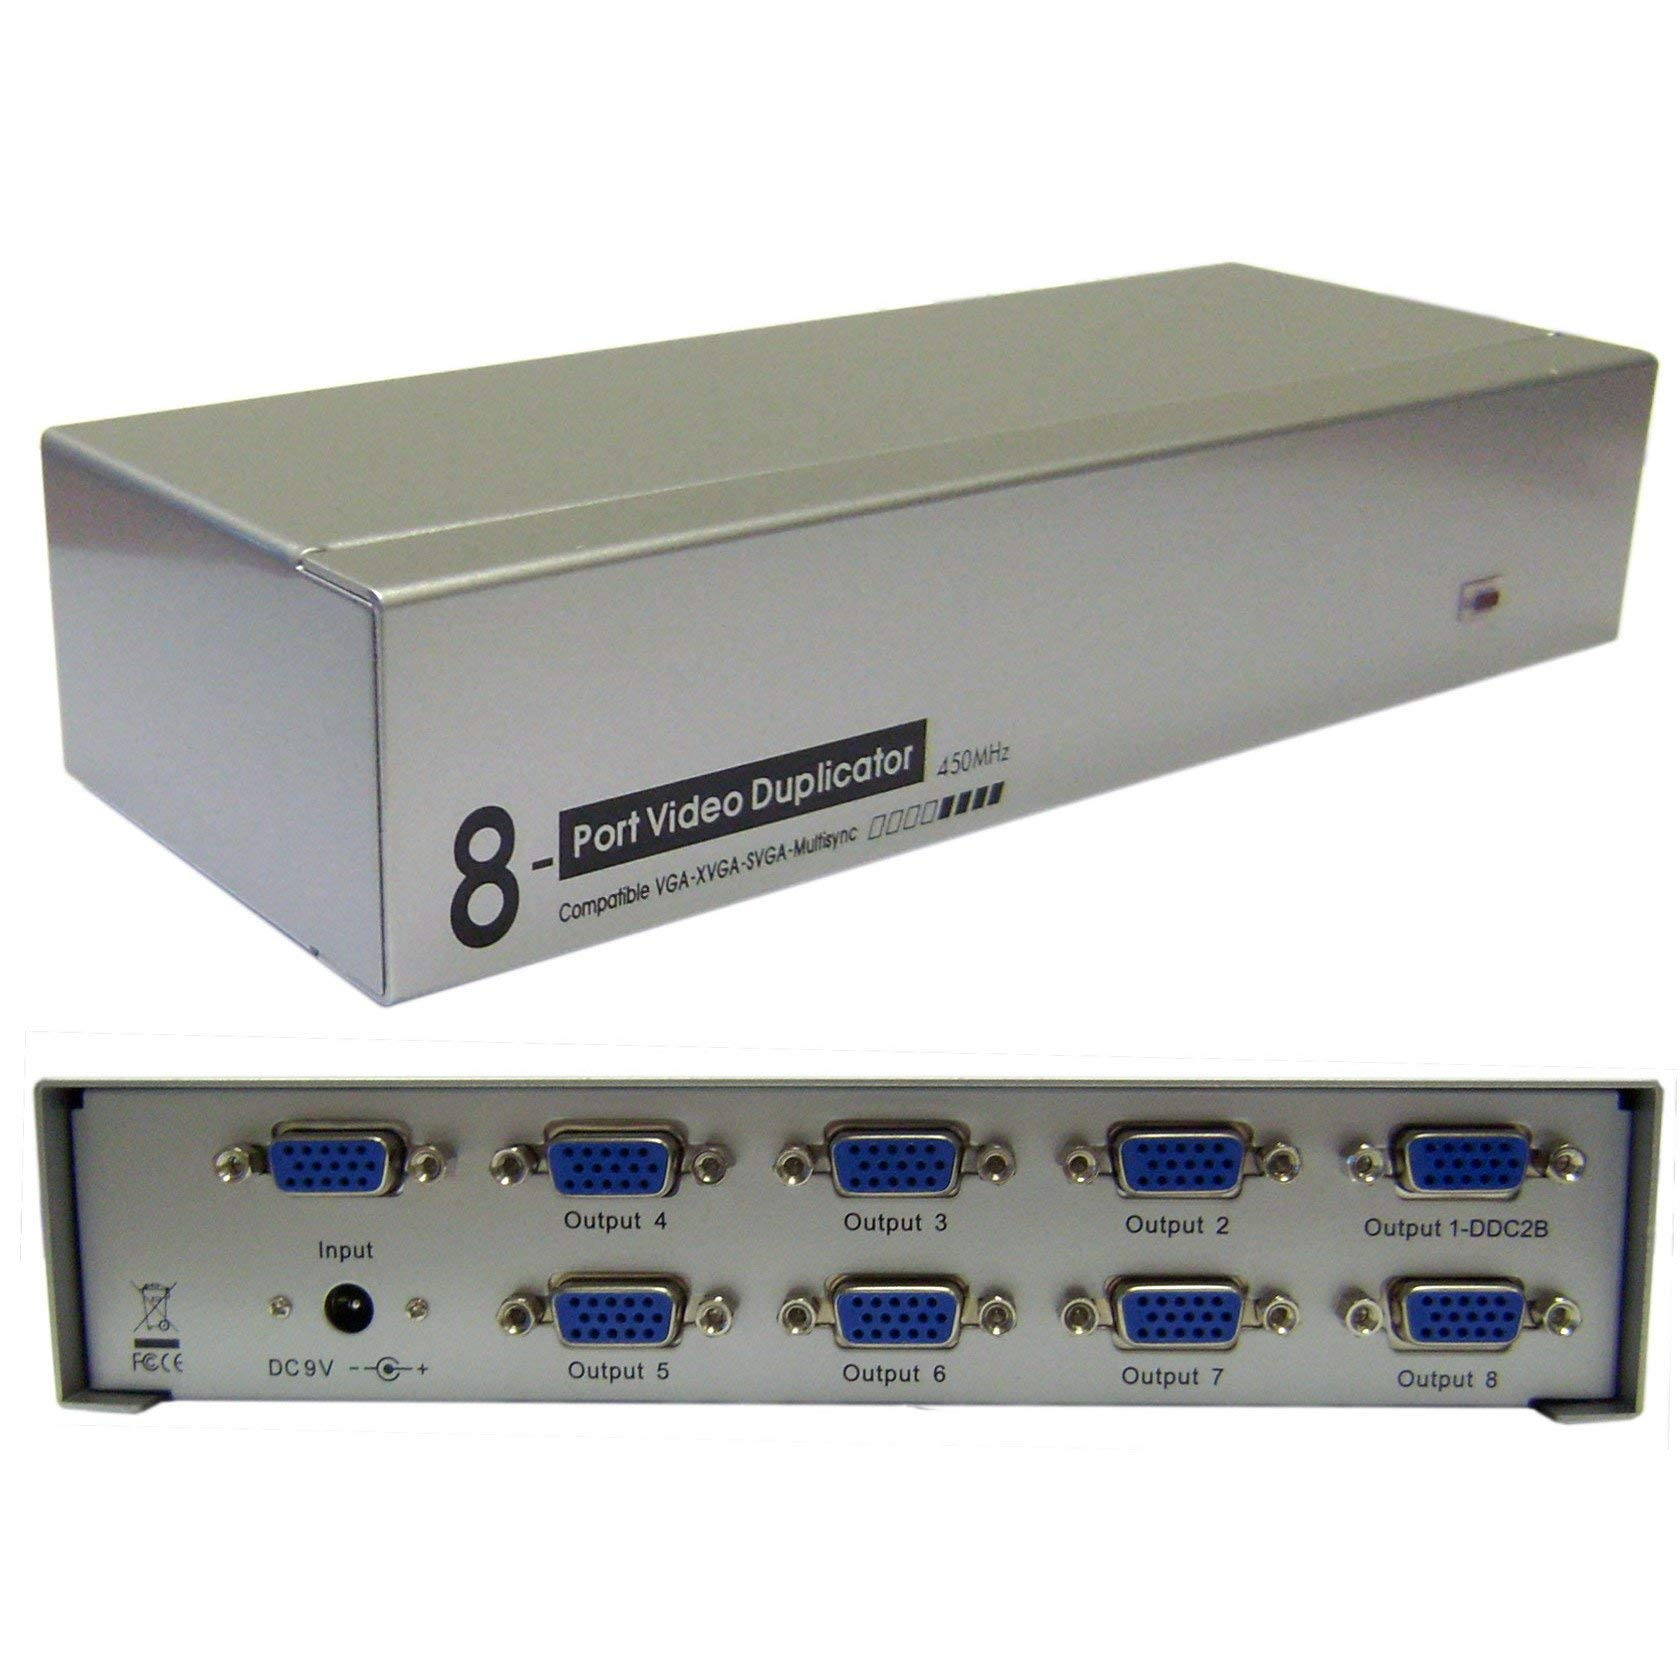 GOWOS VGA Video Splitter, 1 PC to 8 Monitors, 450MHZ by GOWOS